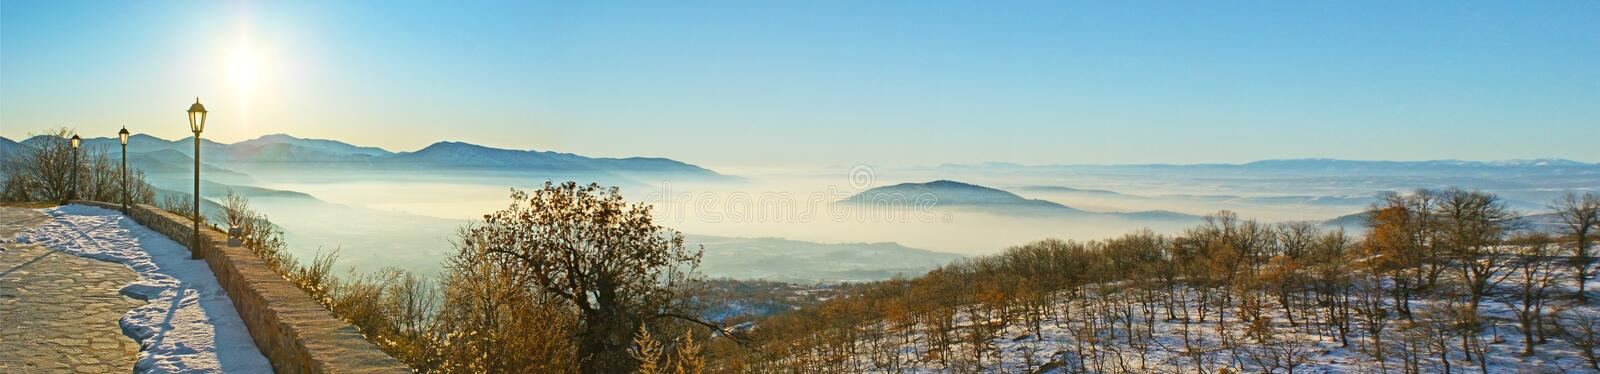 The winter travel to Greece royalty free stock photo